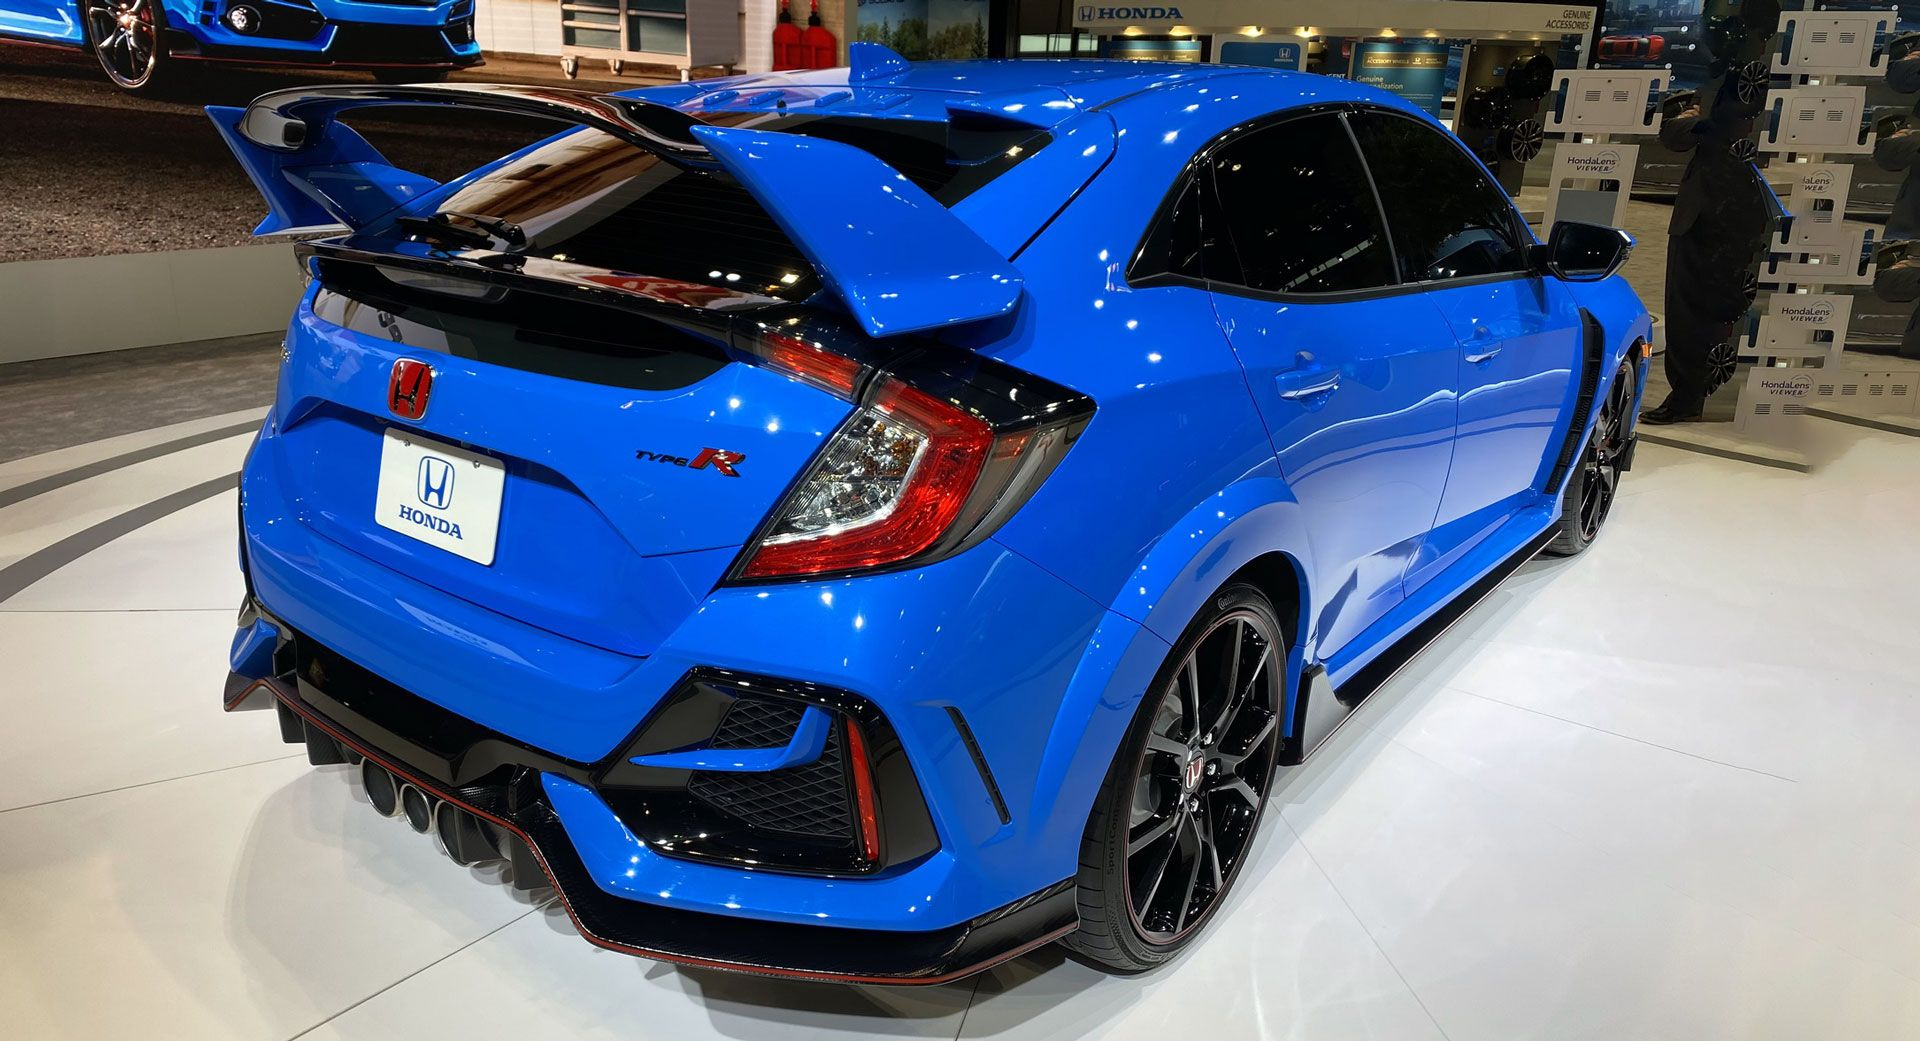 2020 Honda Civic Type R Arrives In America With Minor